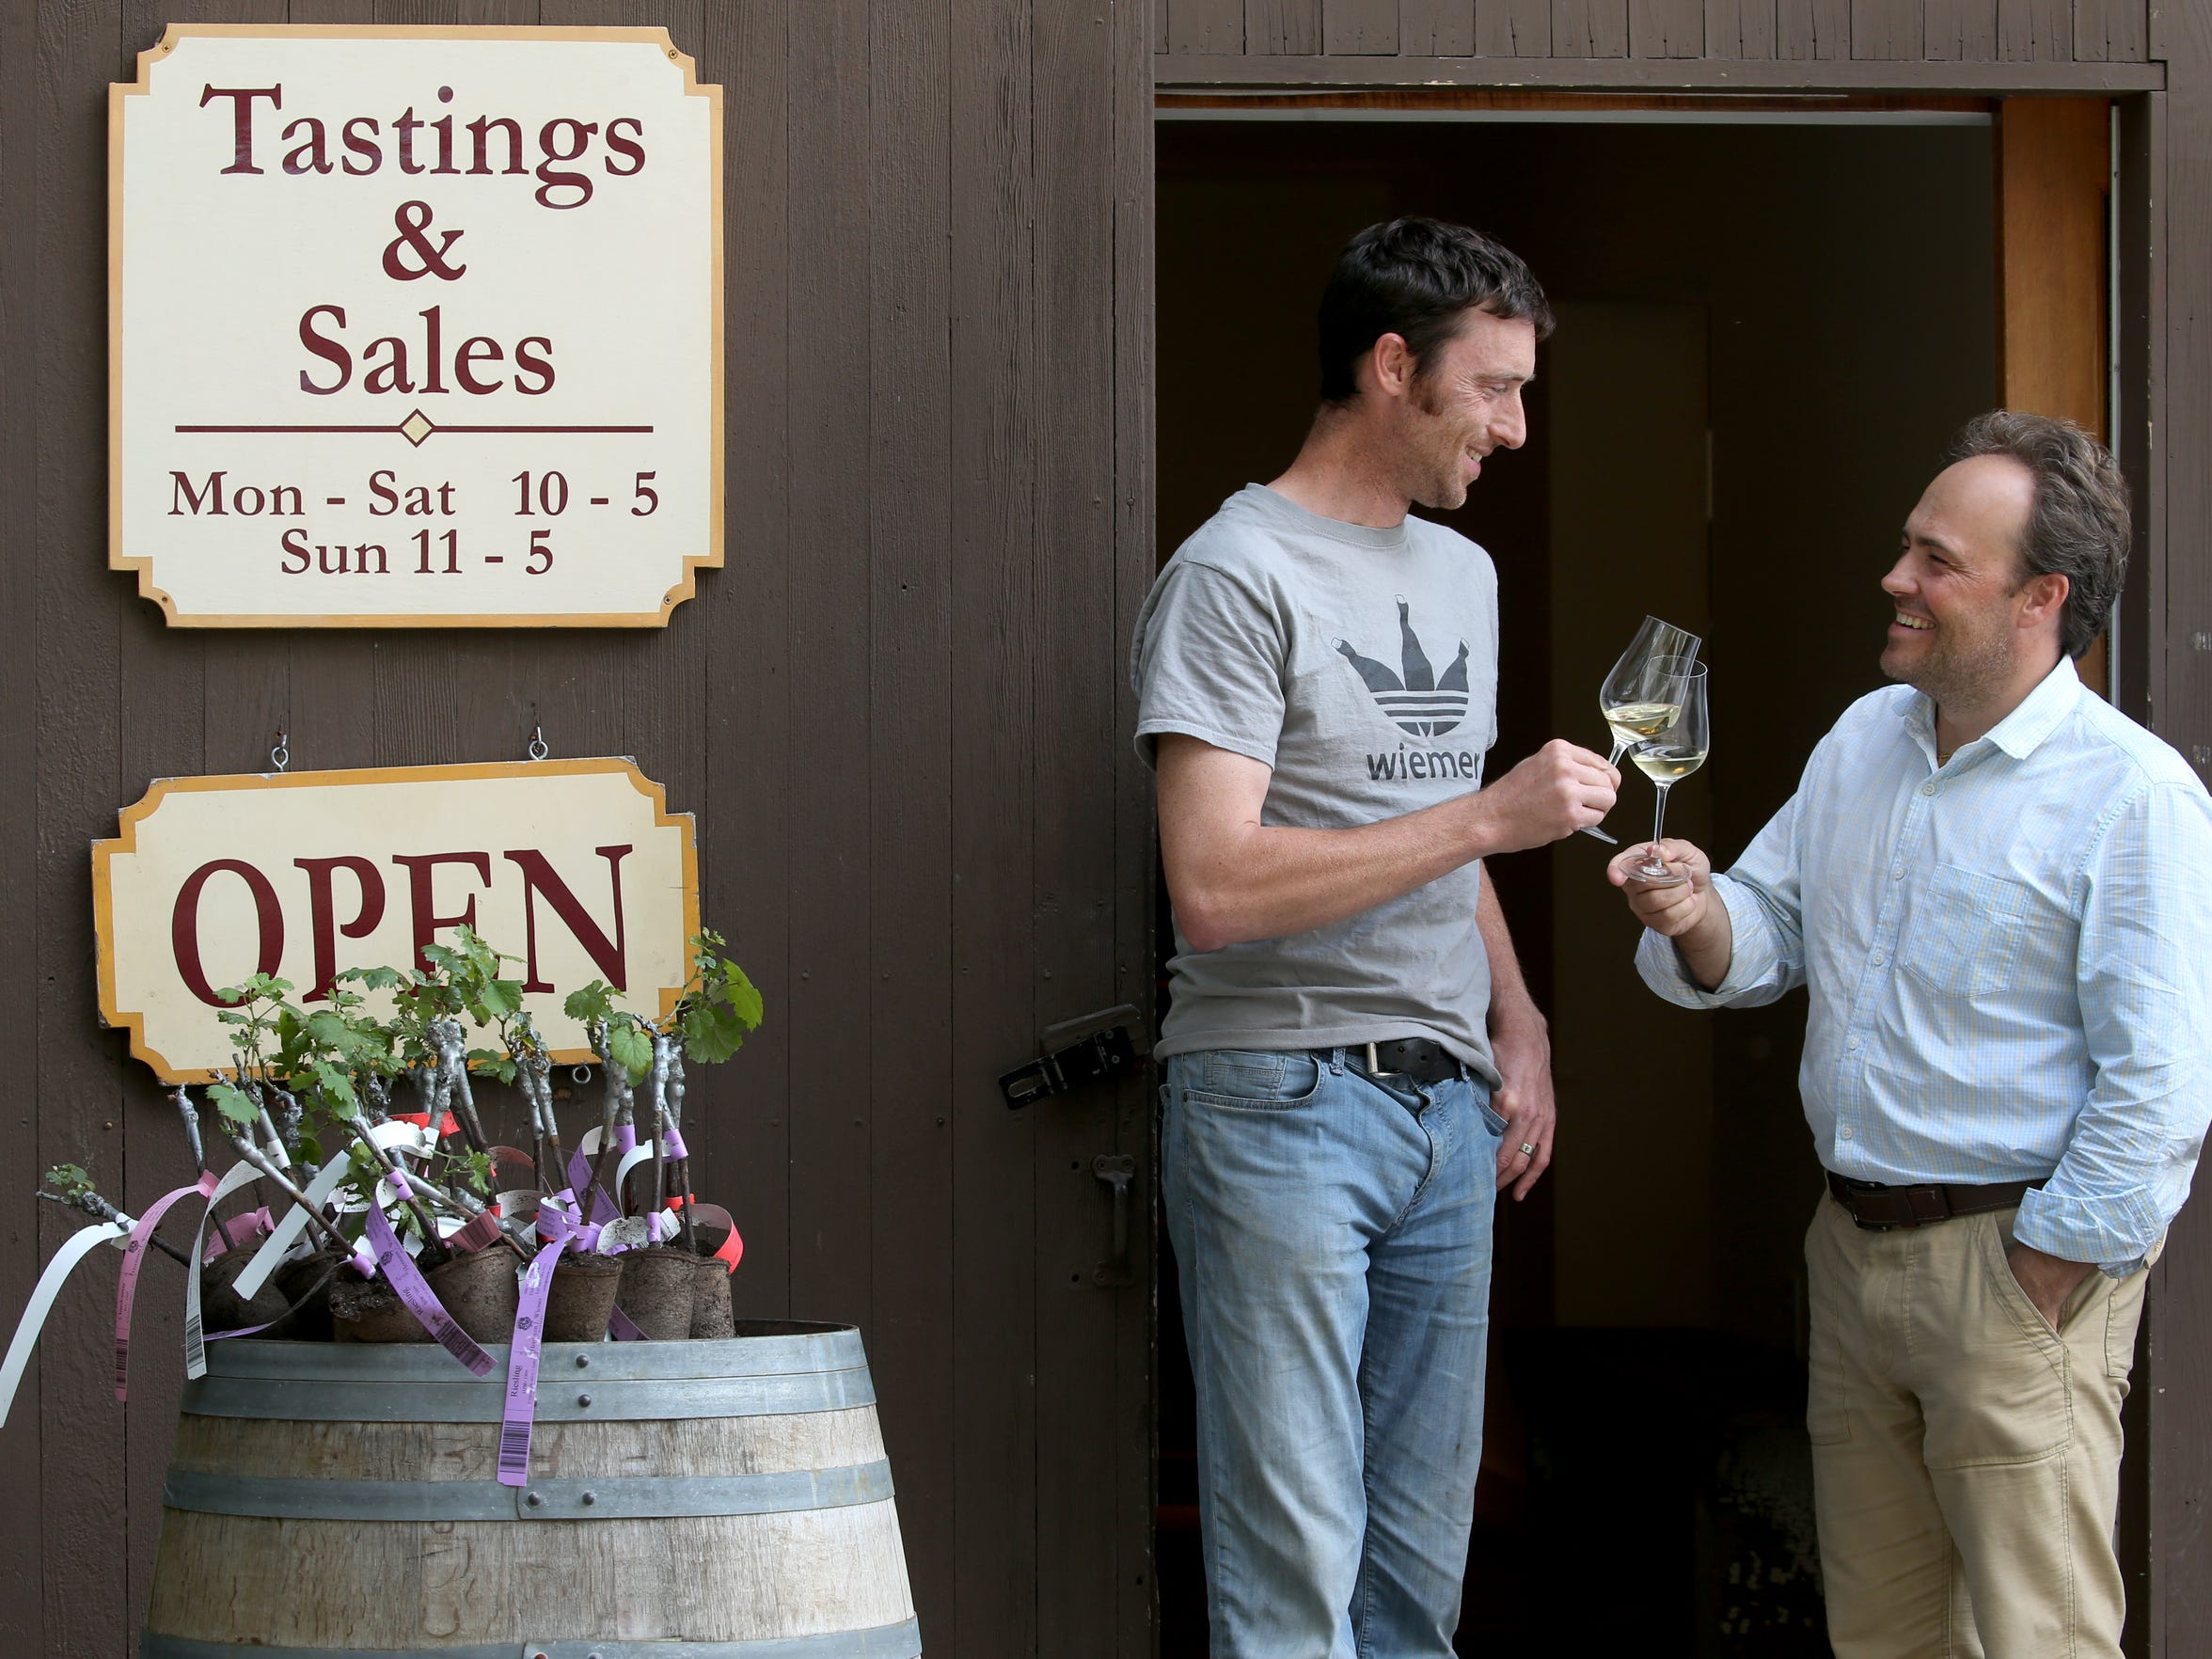 Fred Merwarth and Oskar Bynke outside their tasting and sales barn at Hermann J. Wiemer Winery.